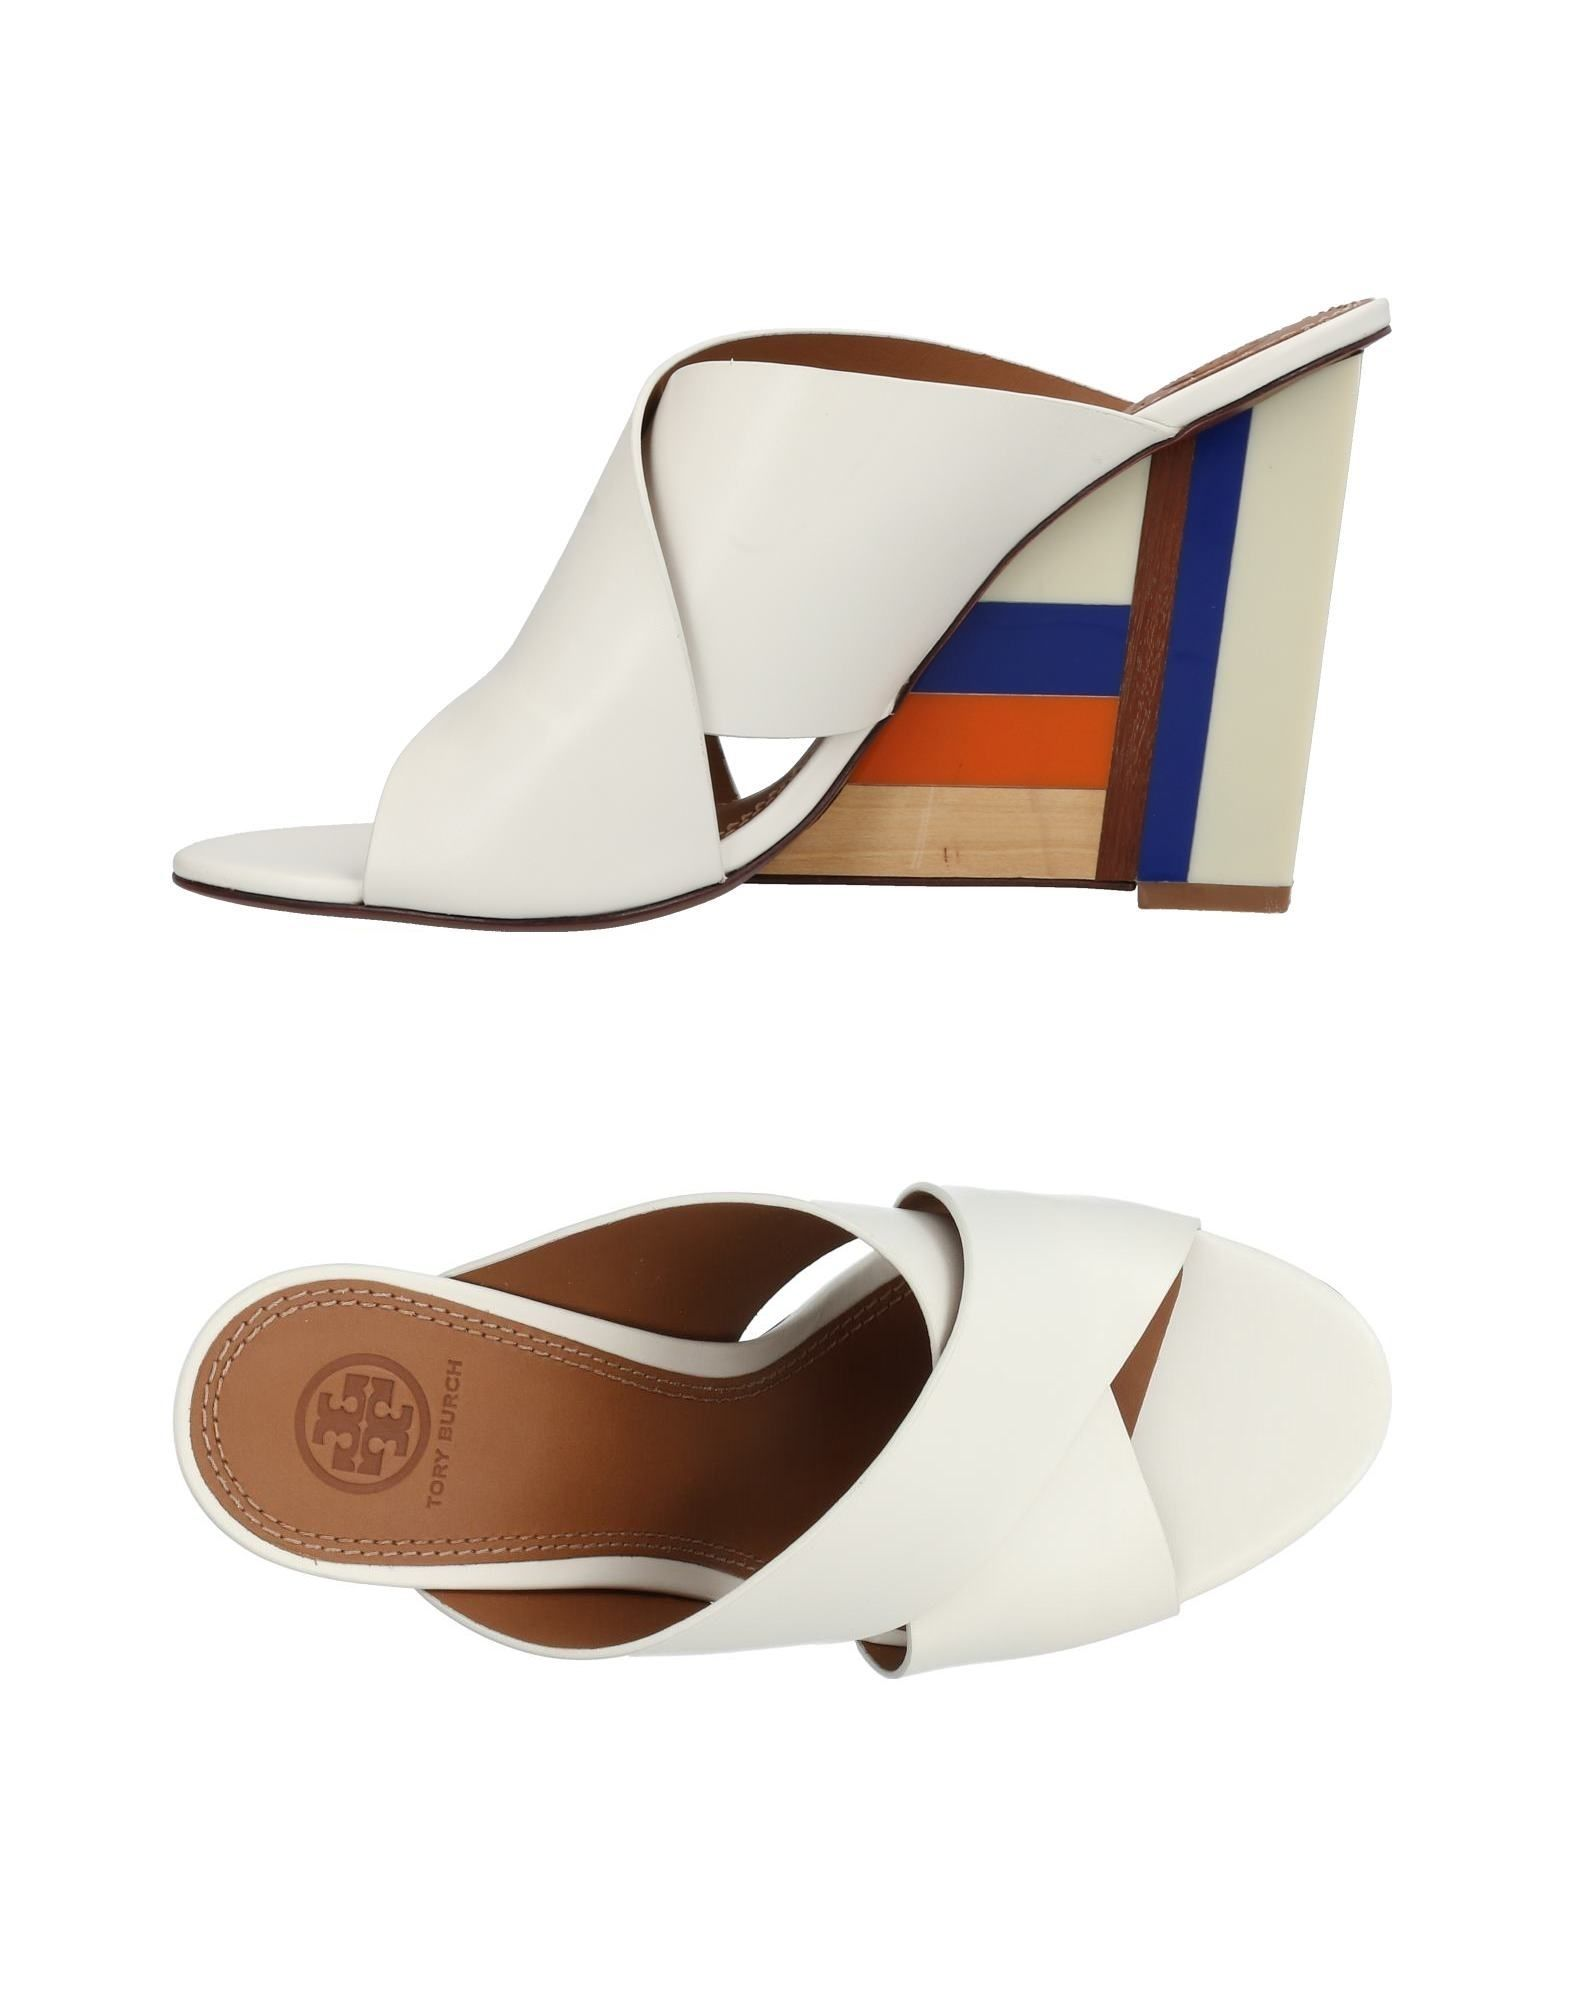 Tory Burch Sandals - Women Tory Burch - Sandals online on  Australia - Burch 44922498HL 94c057